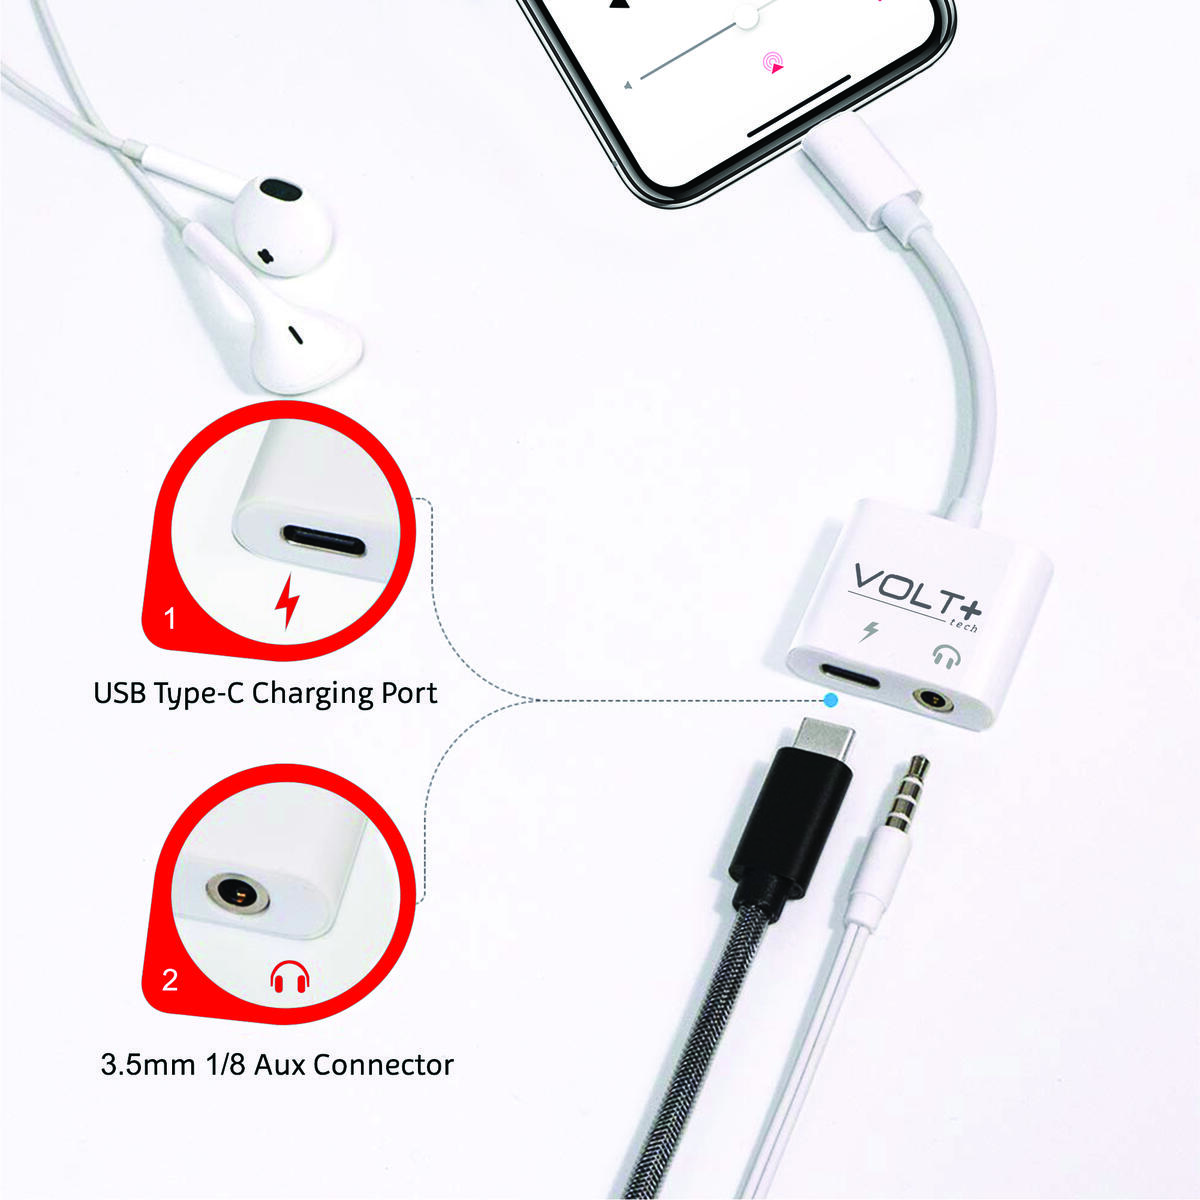 Volt Plus Tech Headphone Aux Adapter Works for Samsung LG Google Apple iPads with USB-C 3.5mm Audio & Charging Port…